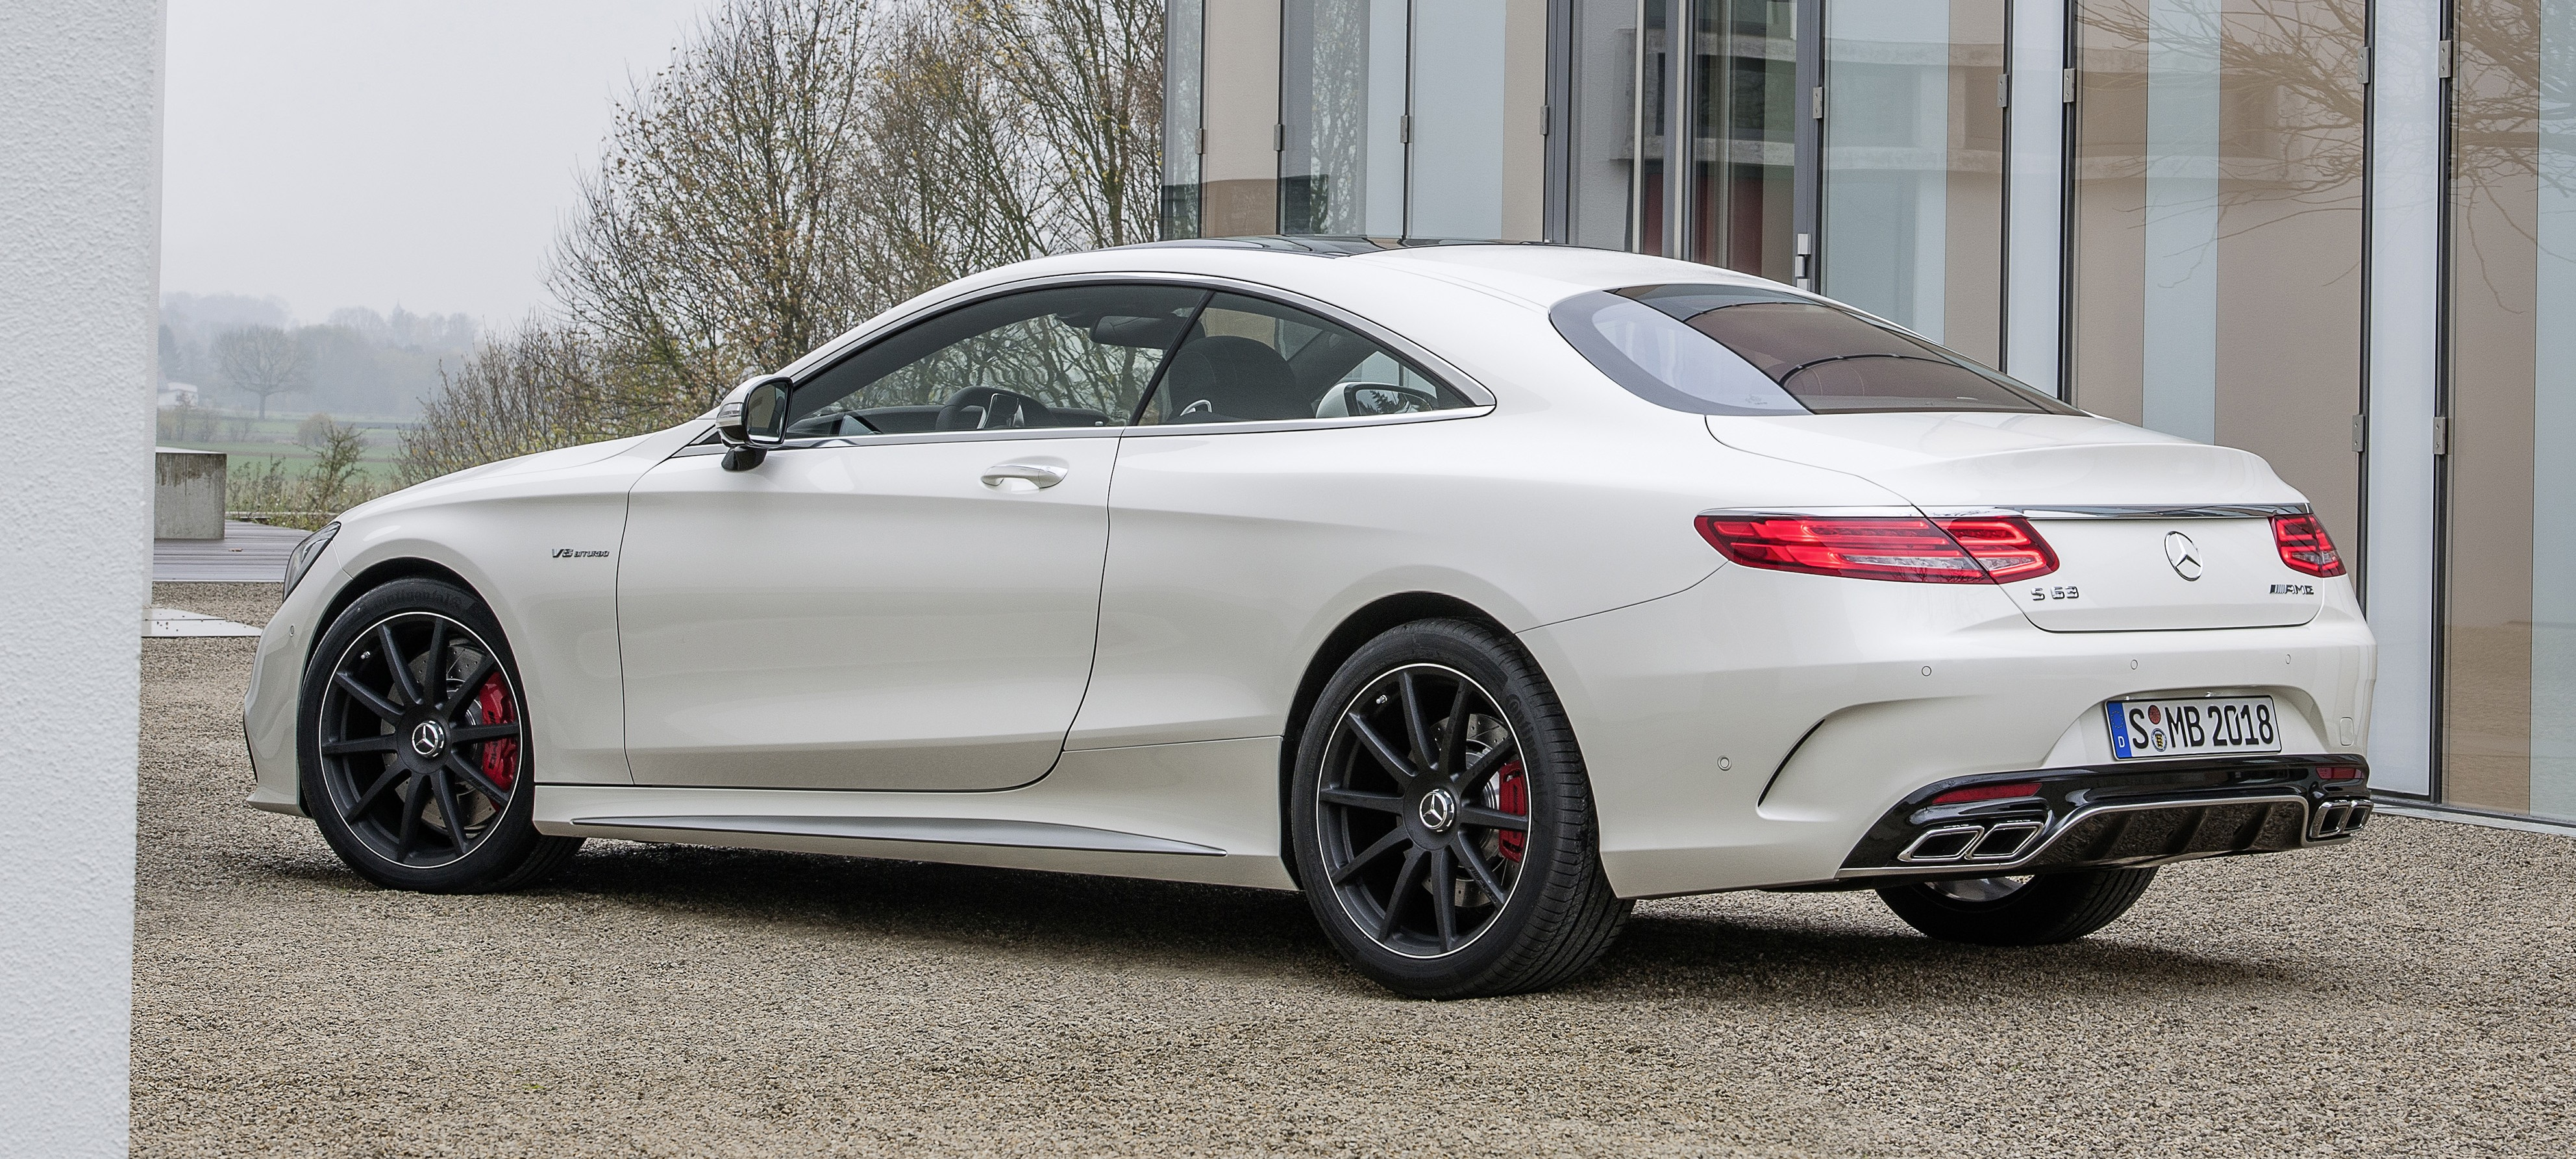 Mercedes benz s 63 amg coupe sleek 585 hp bruiser image for Mercedes benz s 63 amg